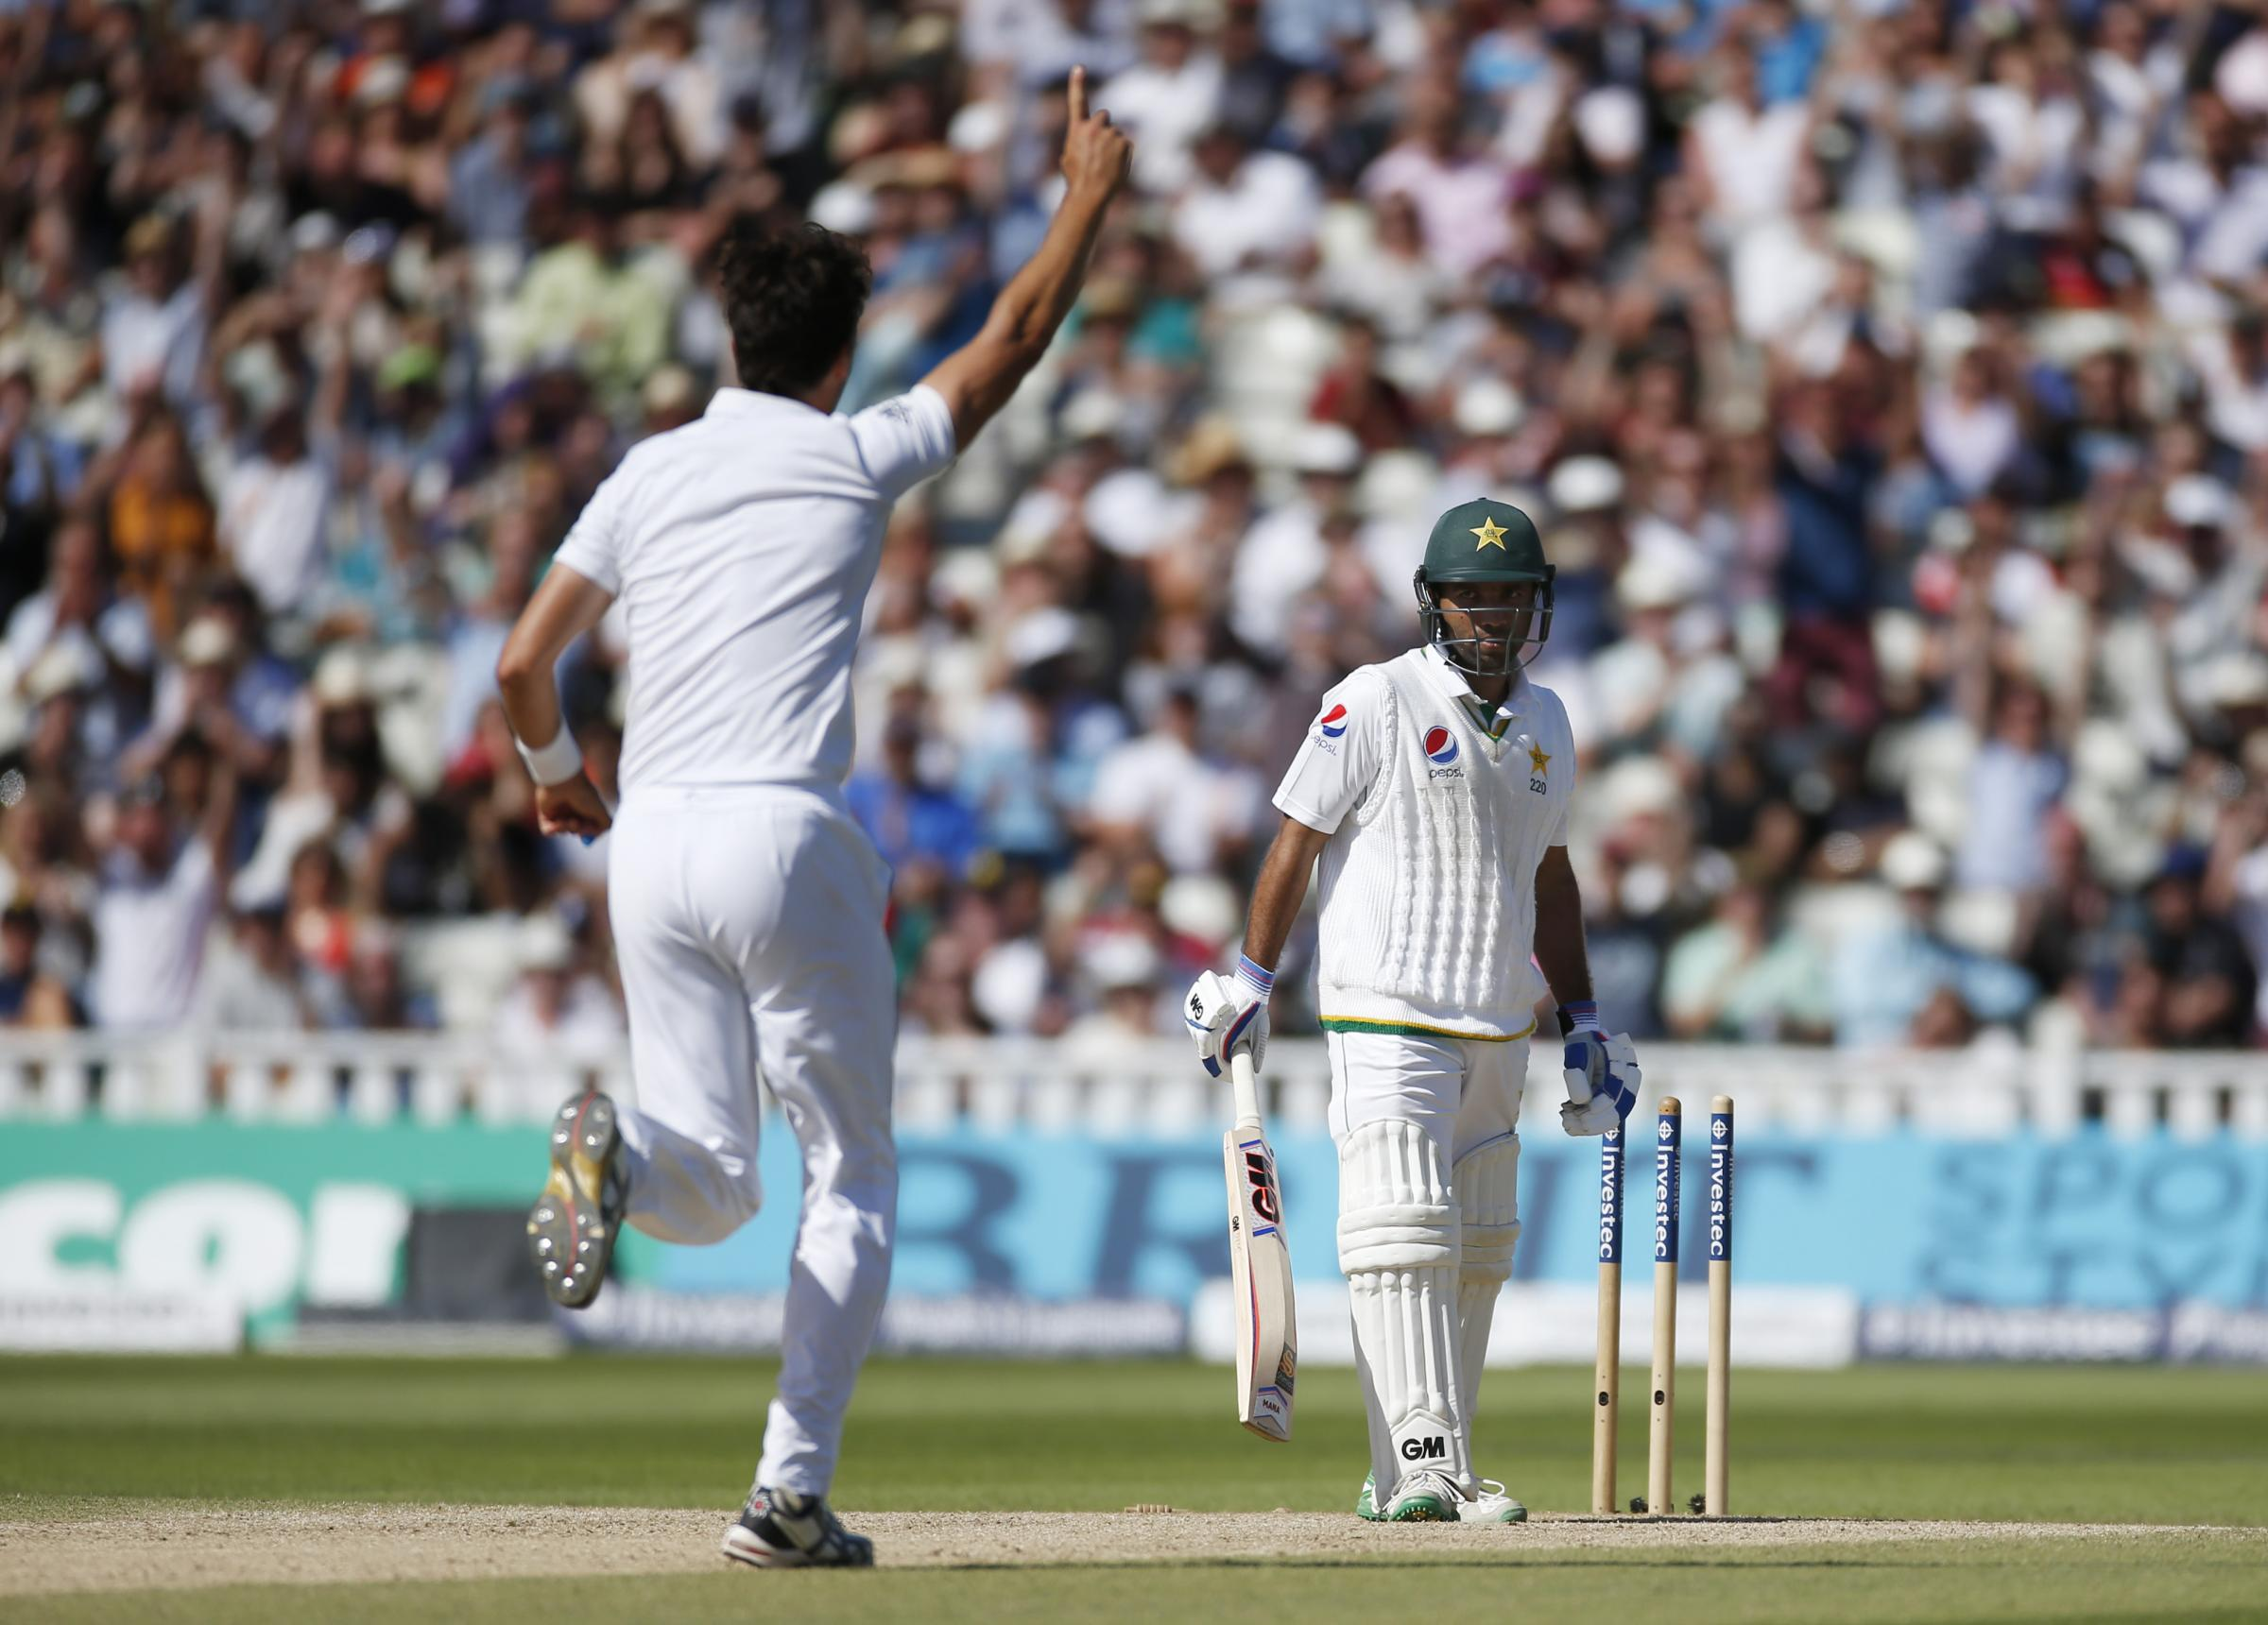 Steven Finn celebrates after bowling Sami Aslam. Picture: Action Images